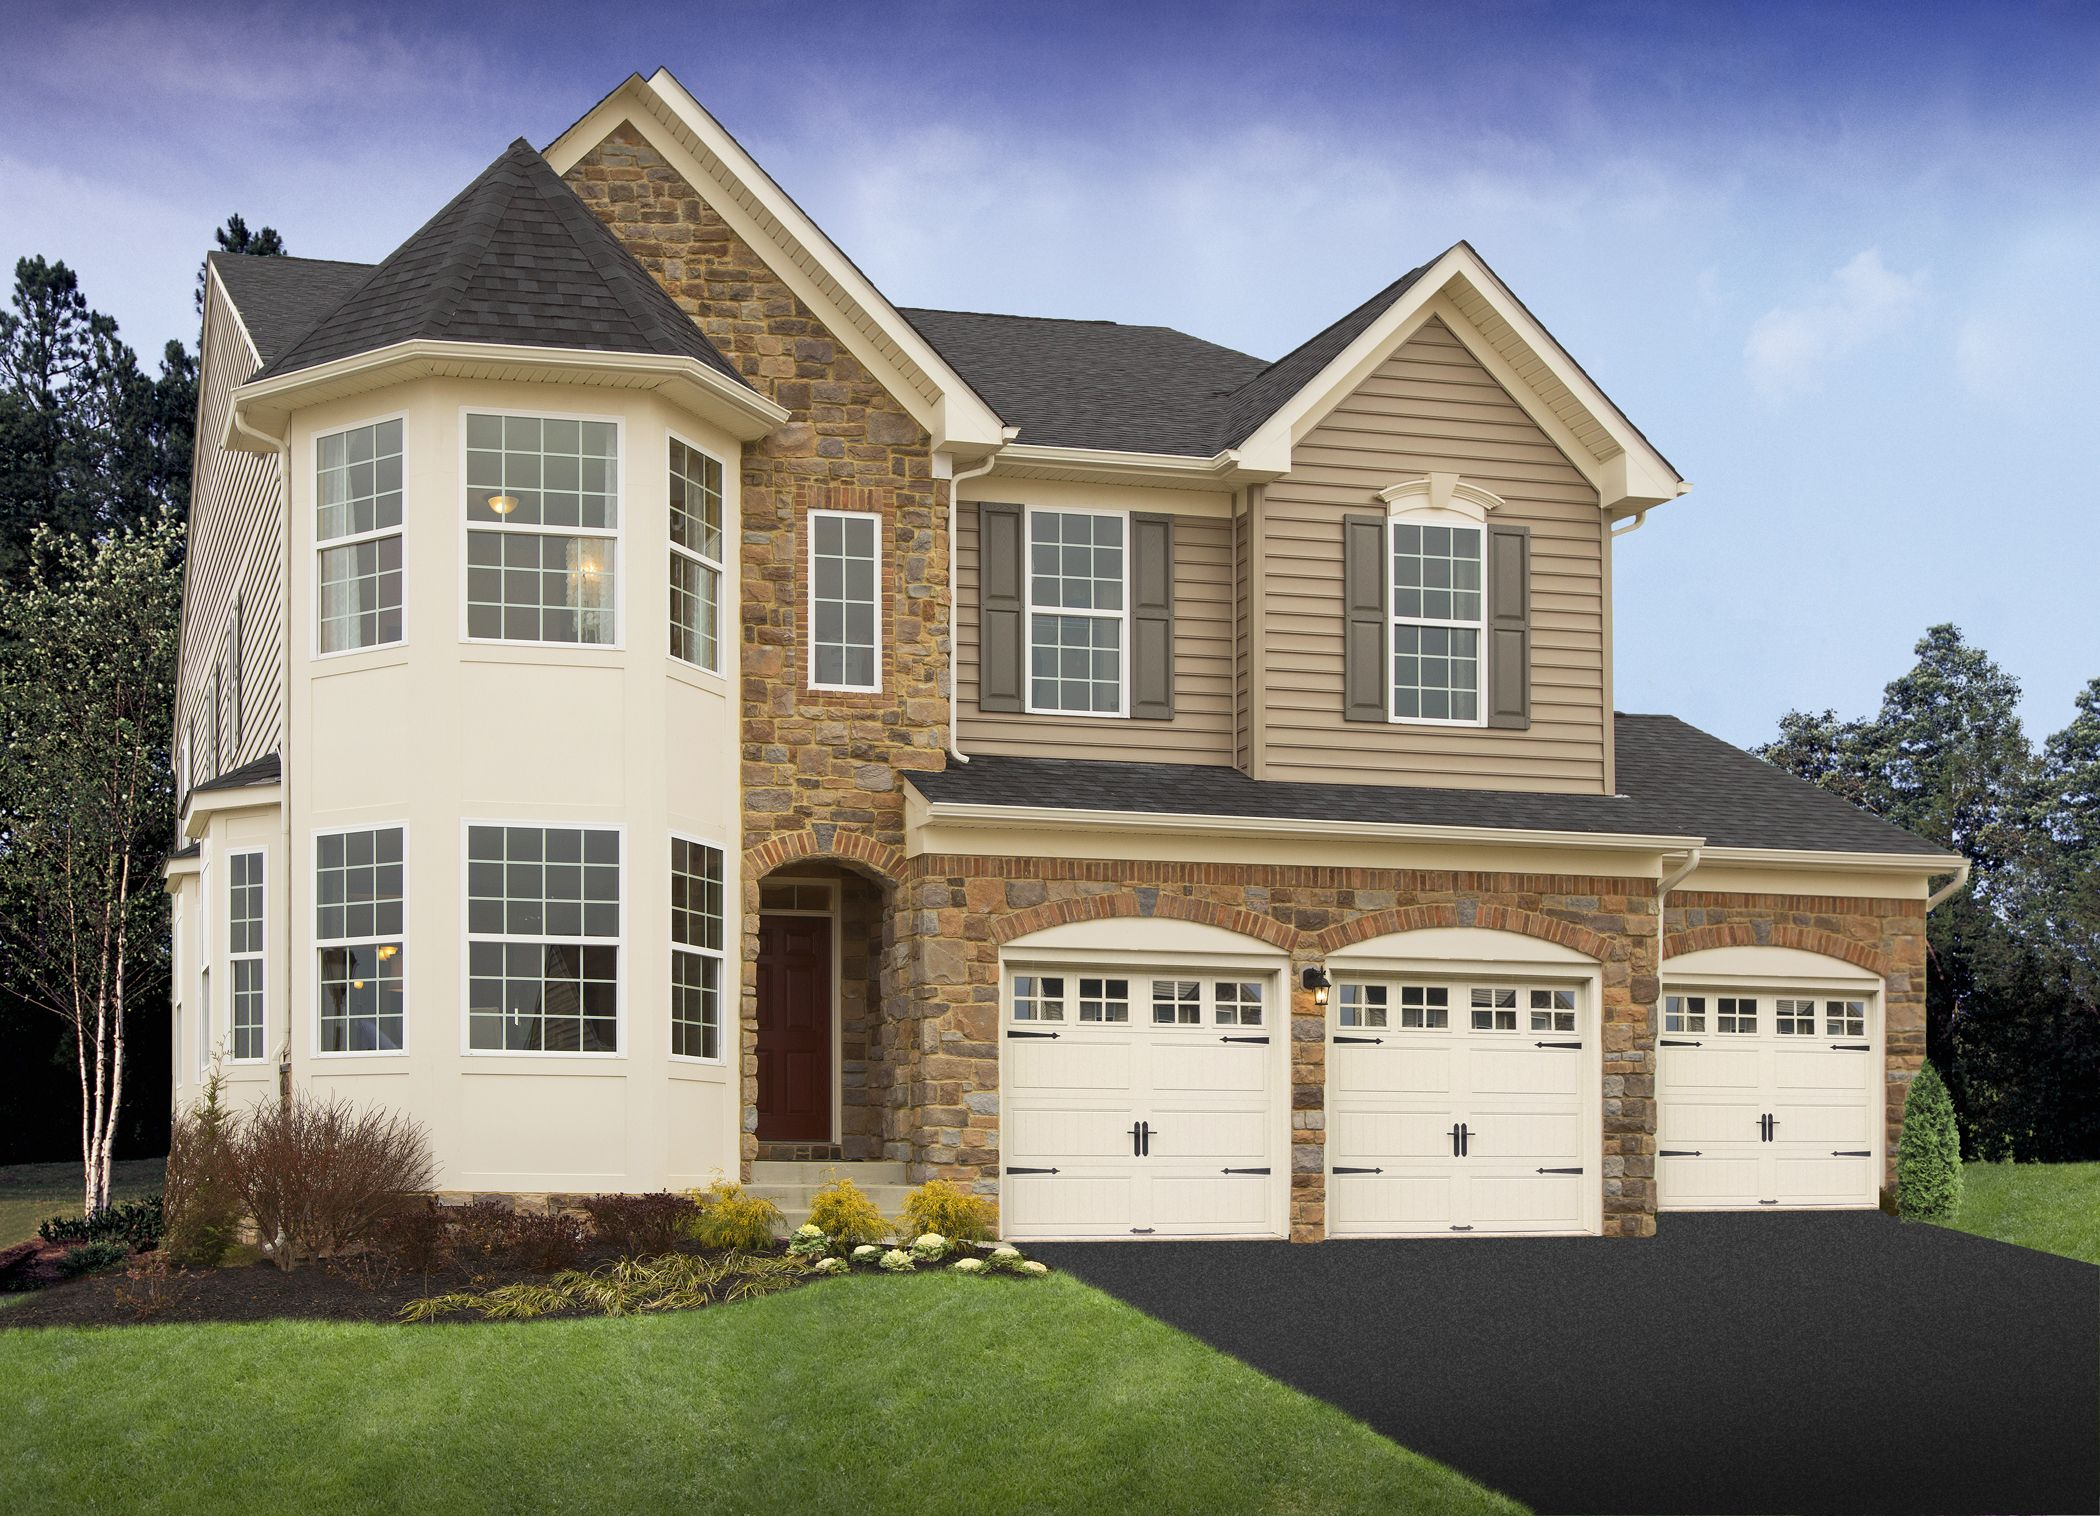 clover ridge by drees homes diamondhomesrealty property photo